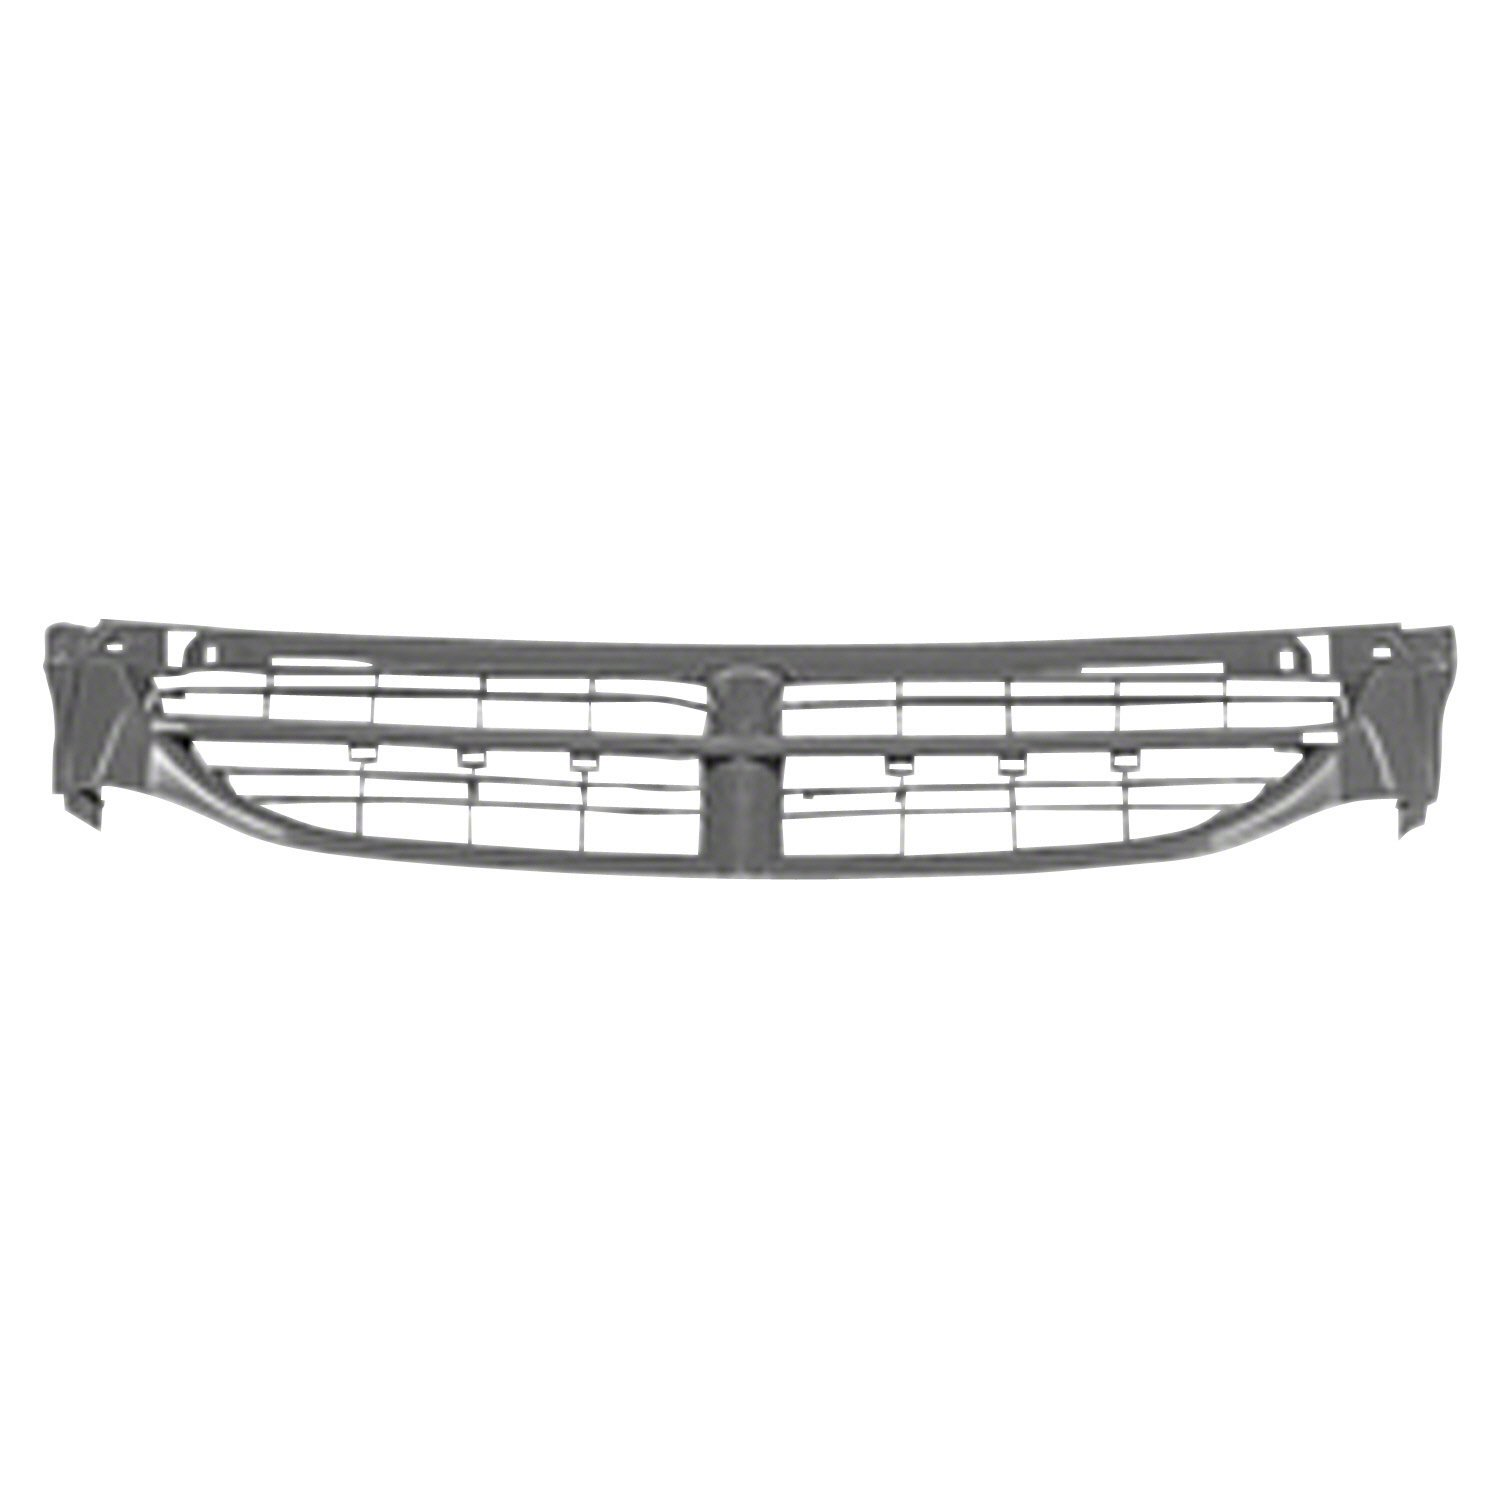 Crash Parts Plus Grille Assembly for 1996-2000 Dodge Caravan CH1200197